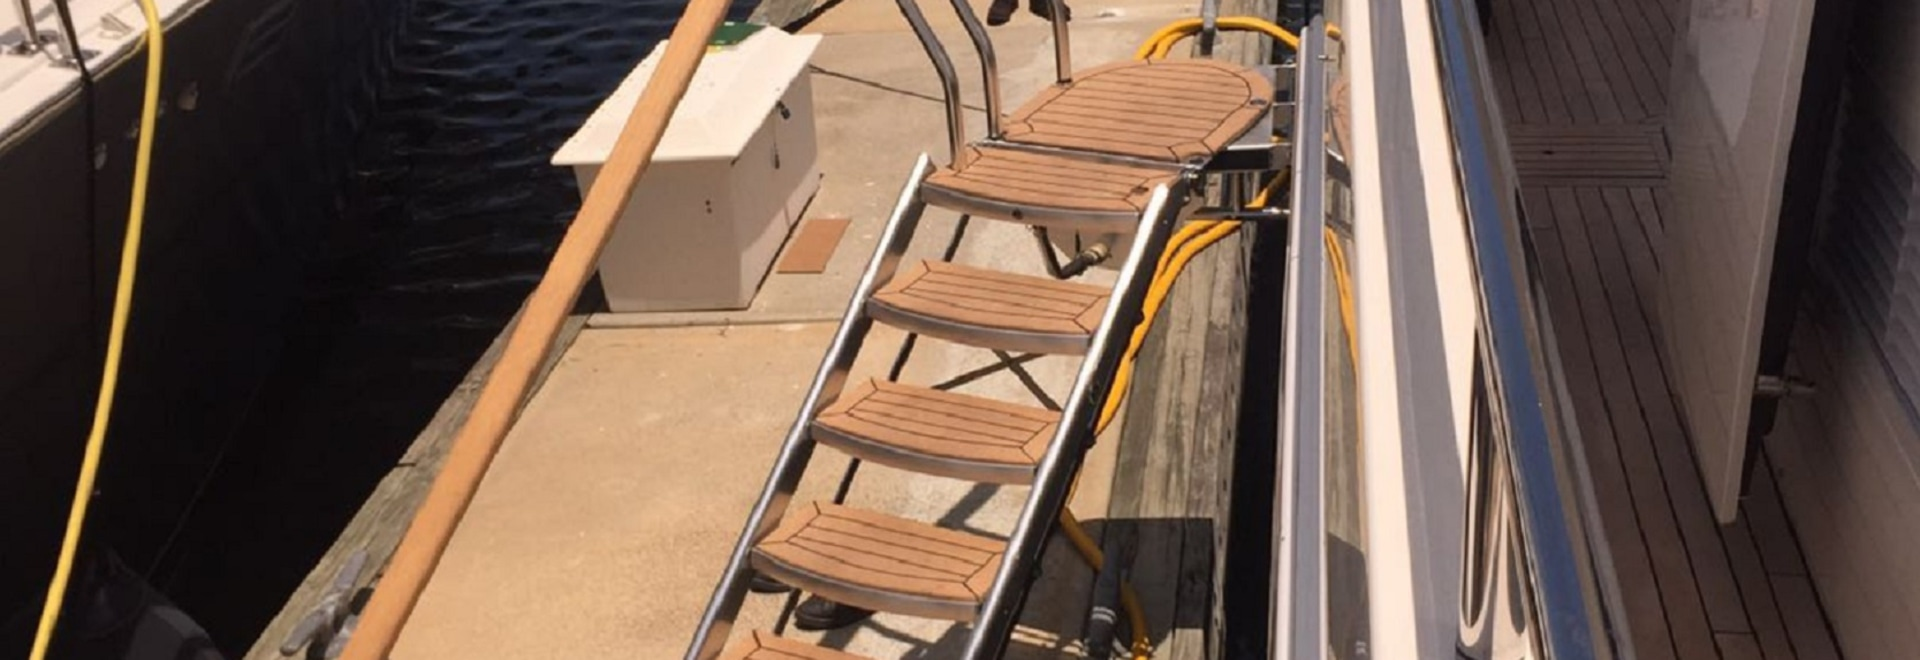 UMT Aluminum Boarding Stairs with Swivel Platform & Removable Chocks